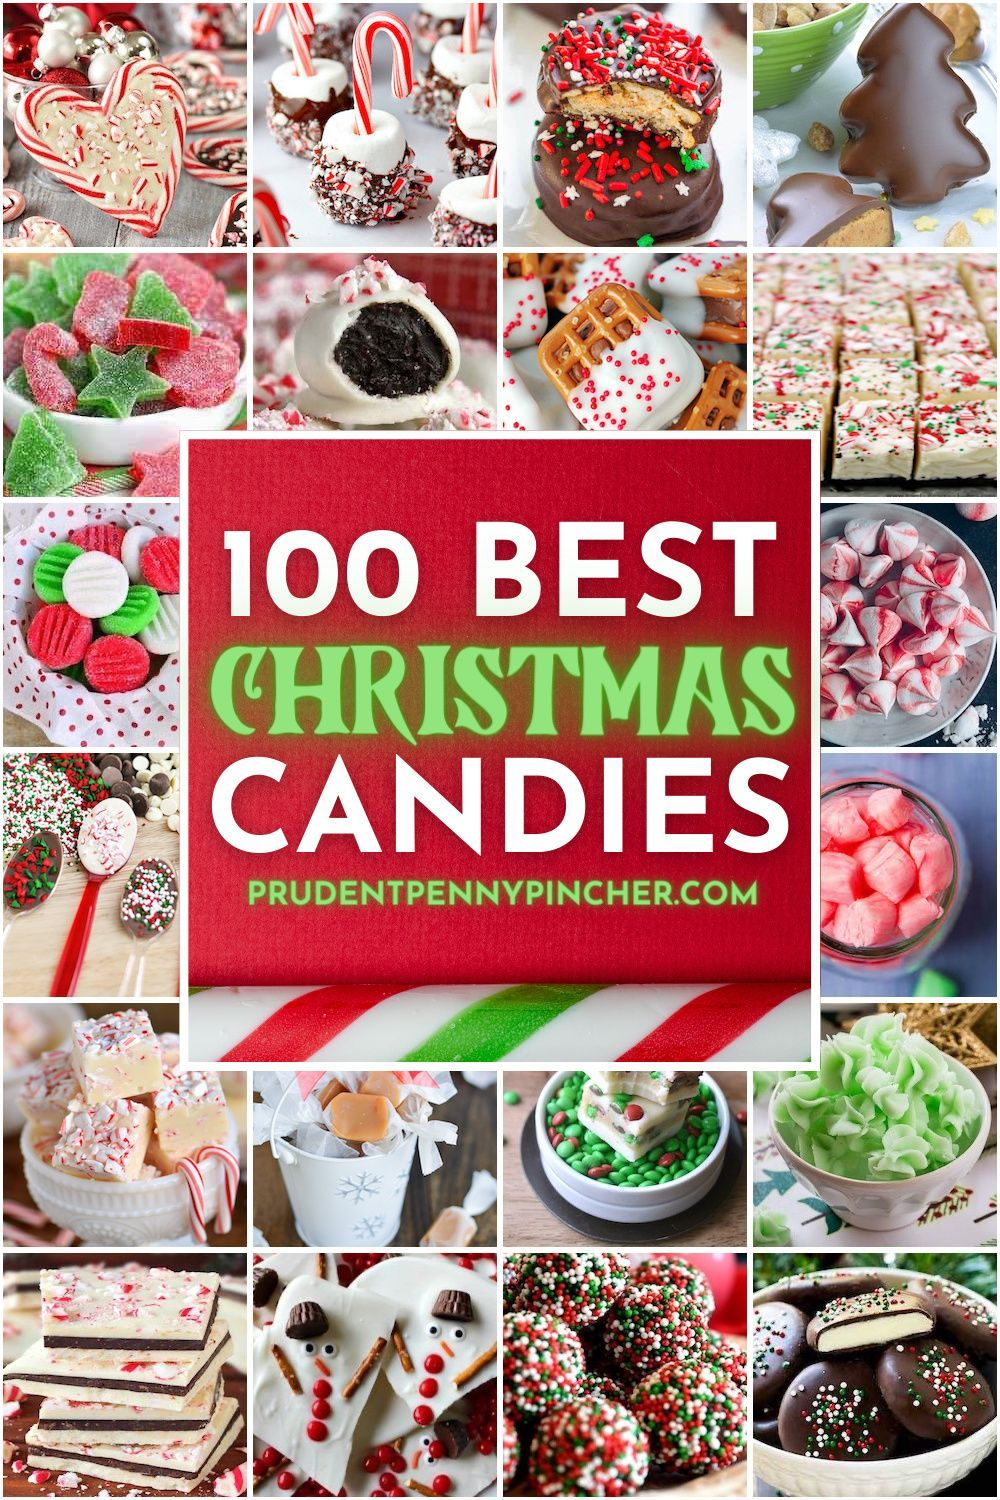 Christmas Candy Recipes 2020 100 Best Christmas Candy Recipes in 2020 | Christmas candy recipes